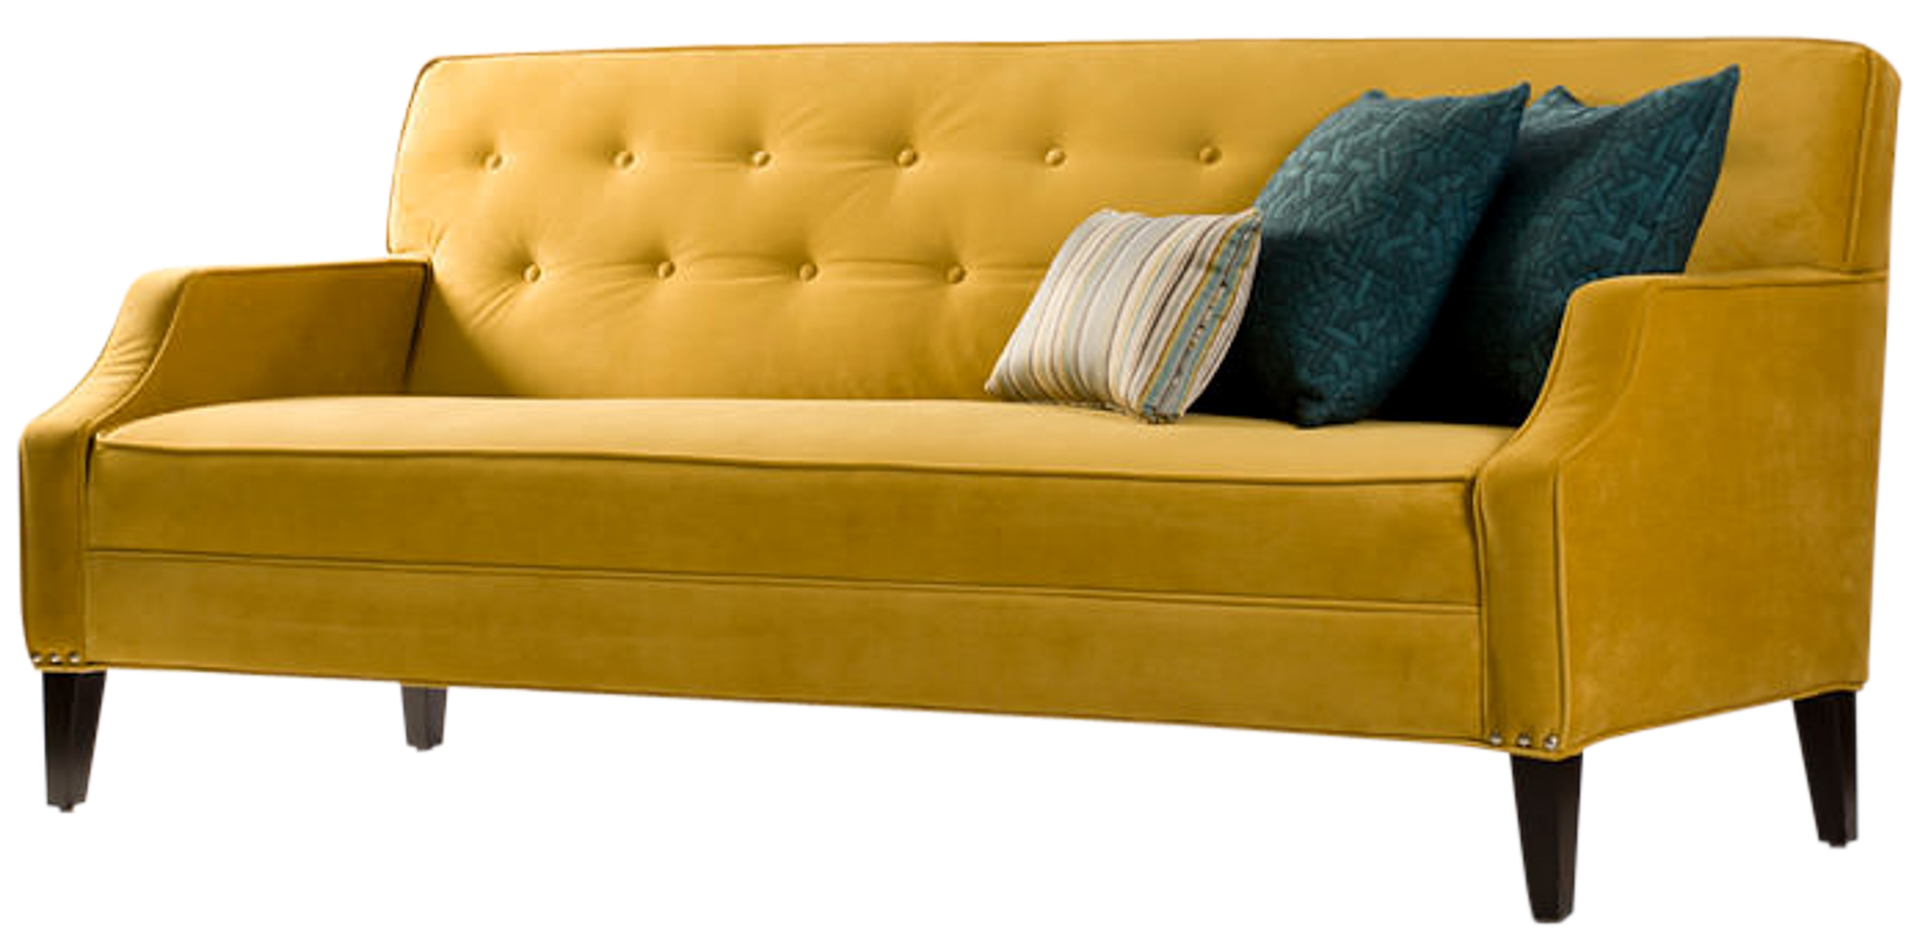 Sofa Png Image 17 E8 Property Services